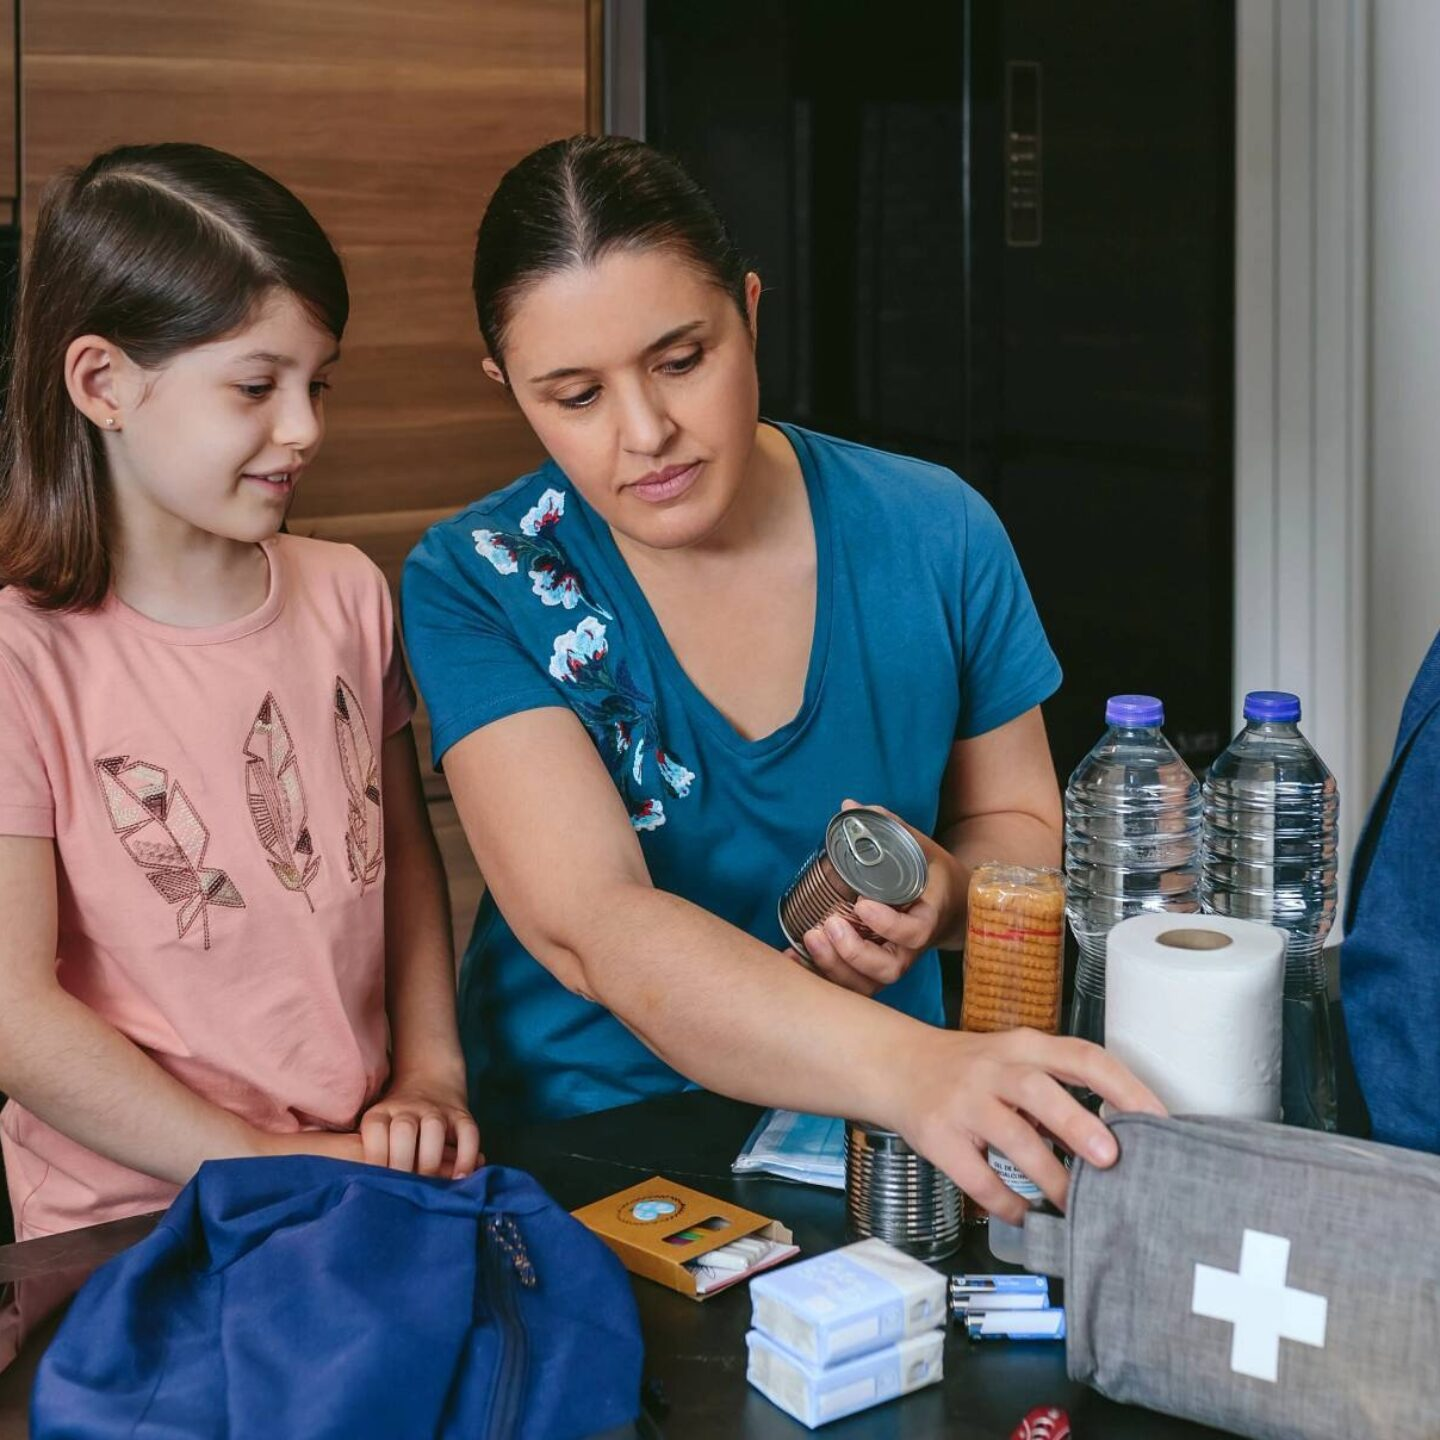 Mother and daughter filling backpack - Be Ready with Our Emergency Preparedness Tips | NSF International